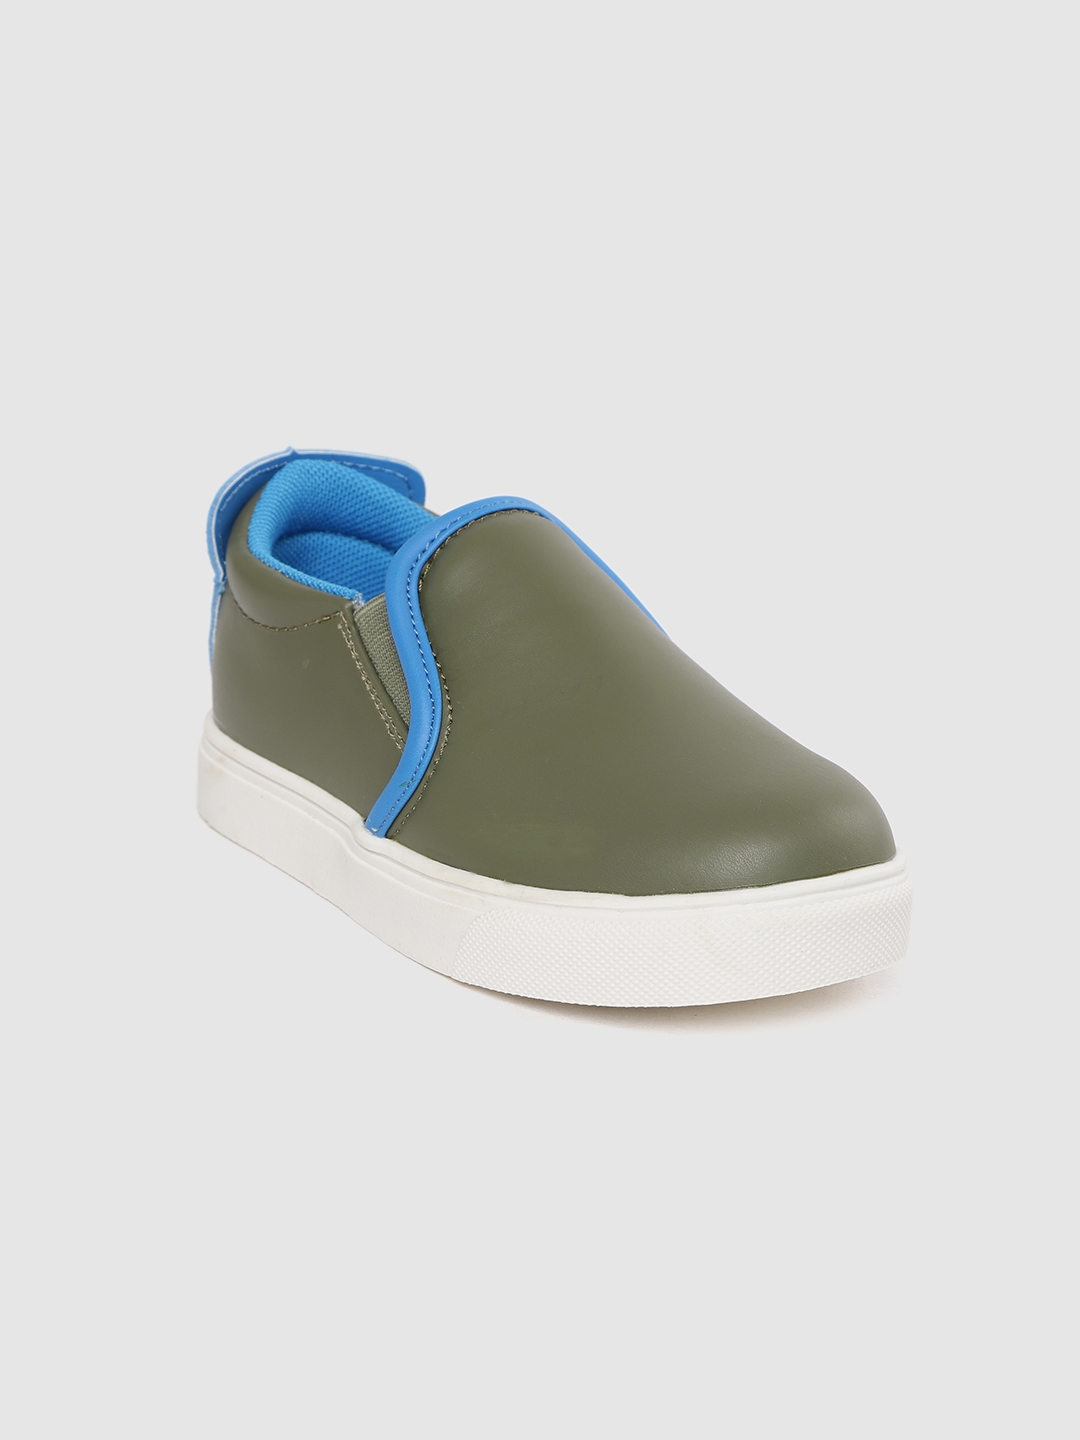 United Colors of Benetton Kids Olive Green Slip On Sneakers